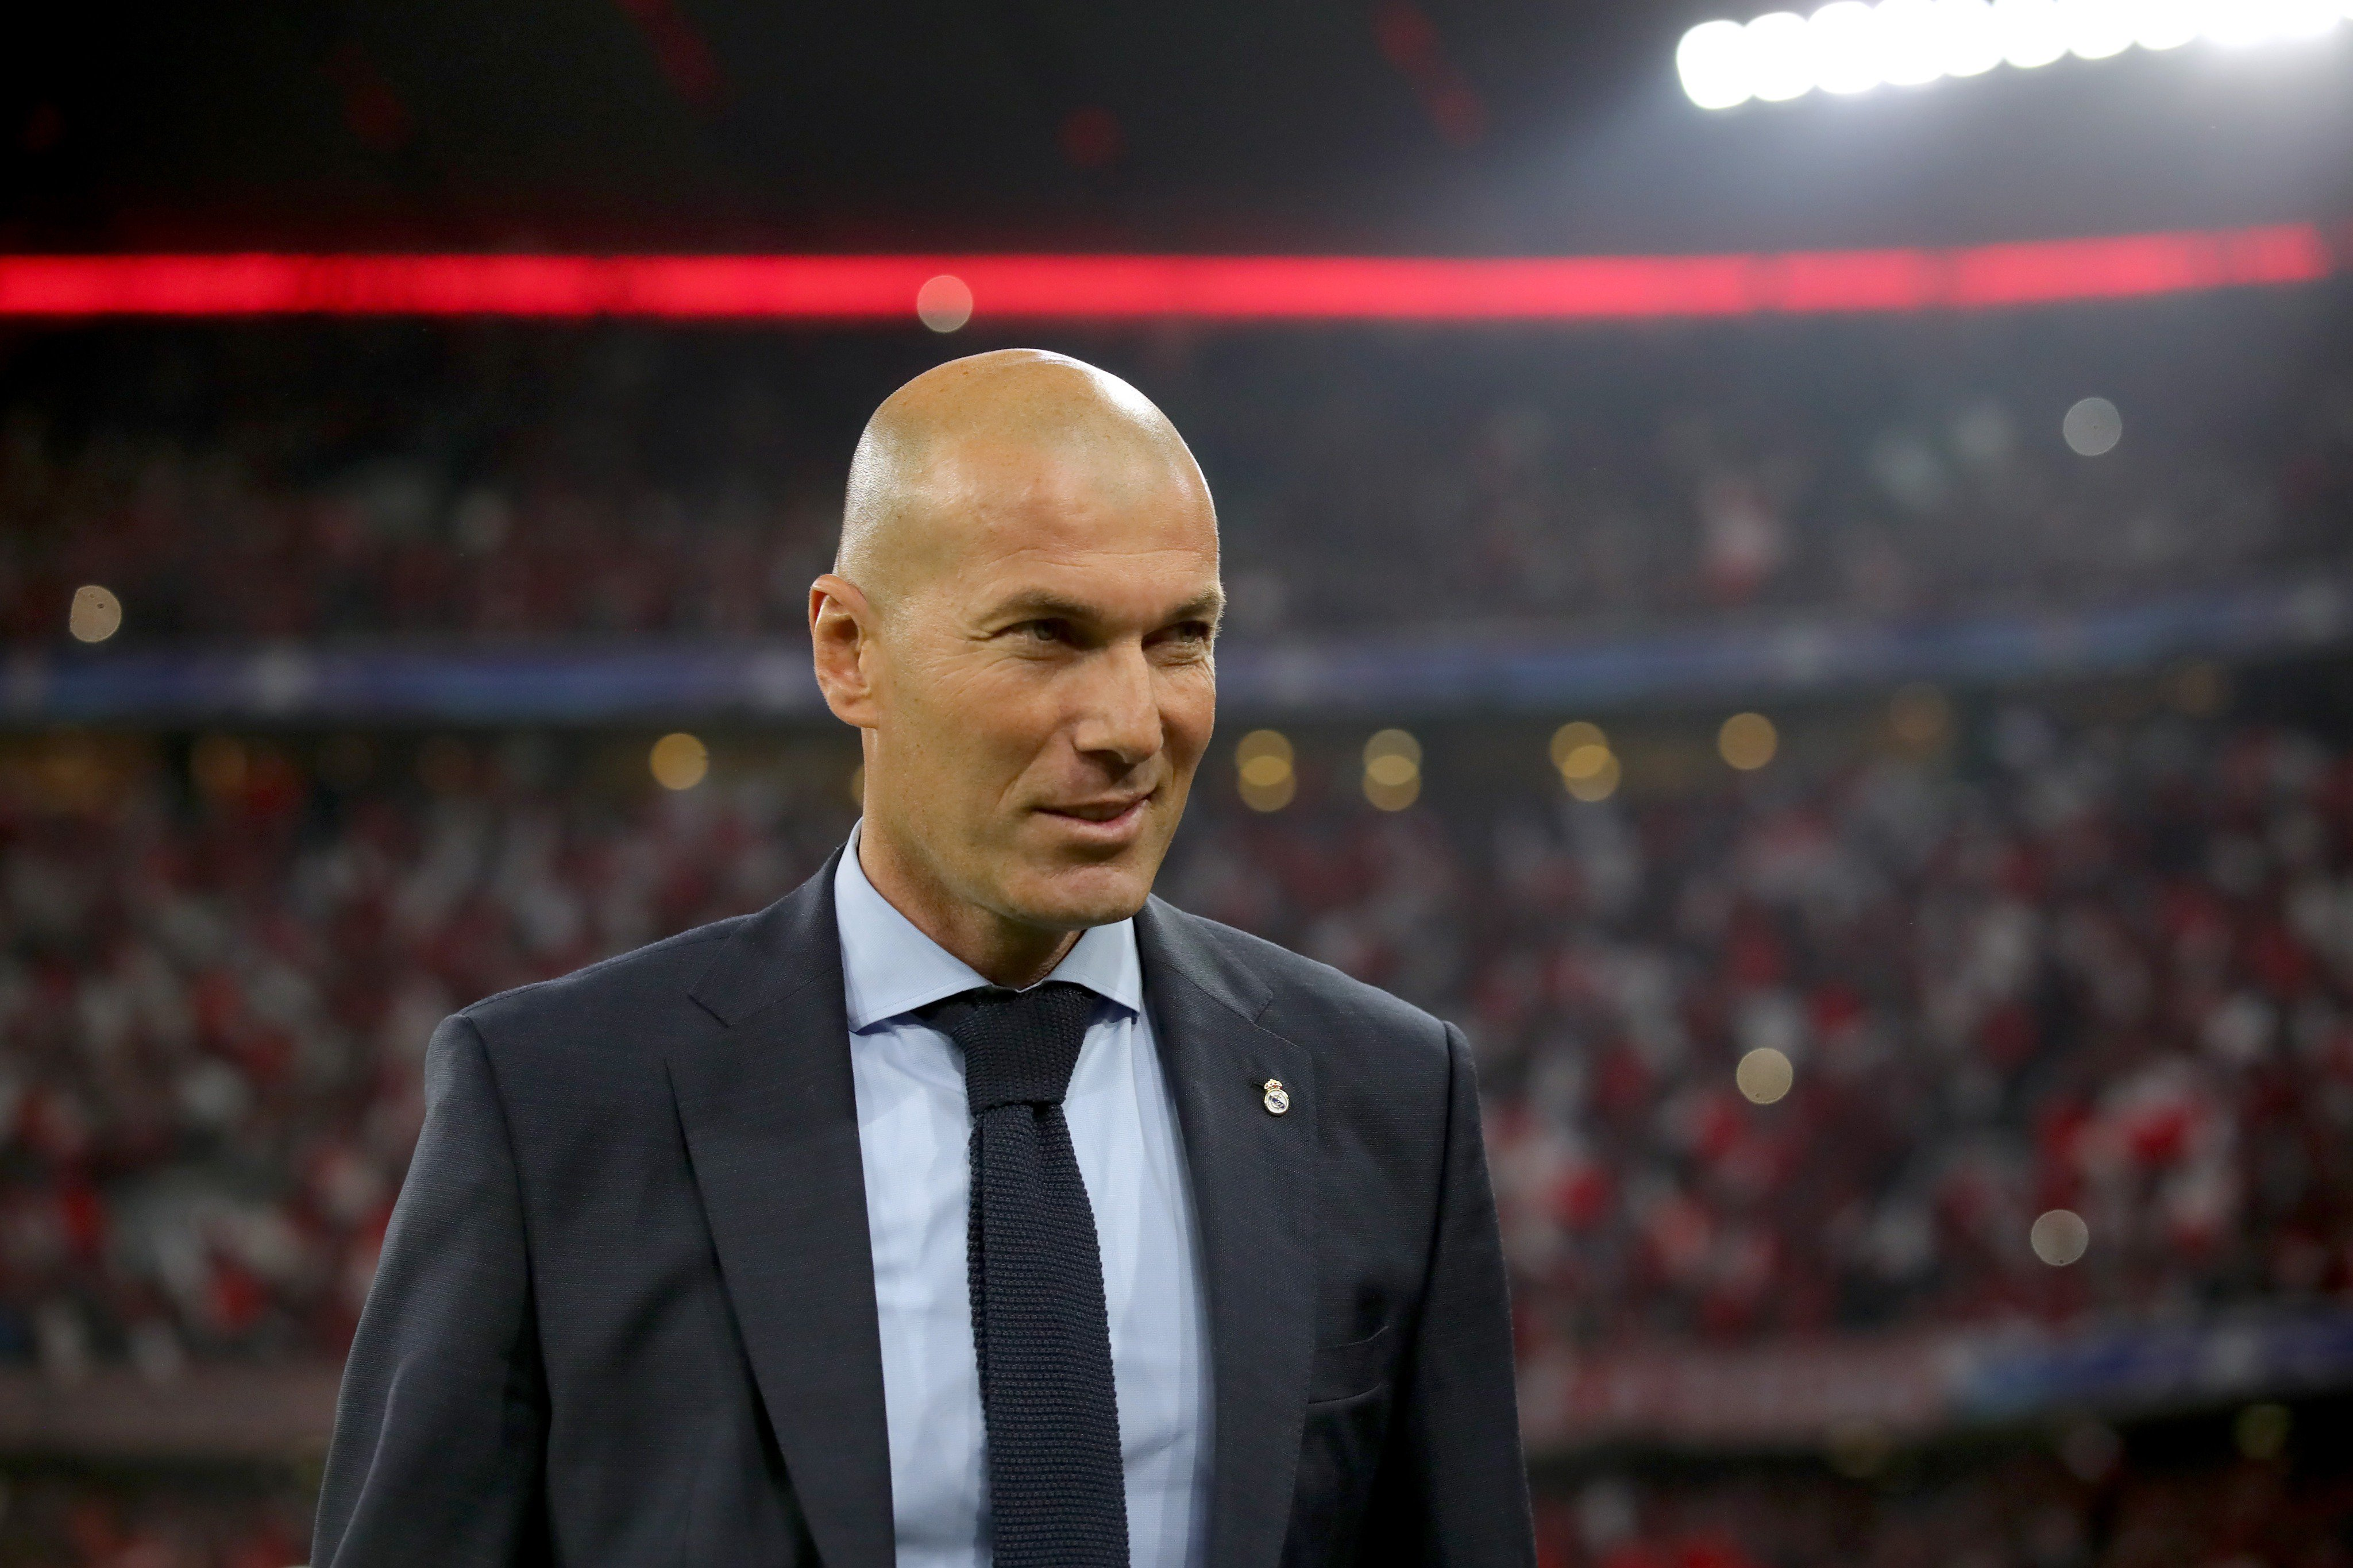 Zidane Reappointed As Real Madrid Manager 10 Months After Resignation